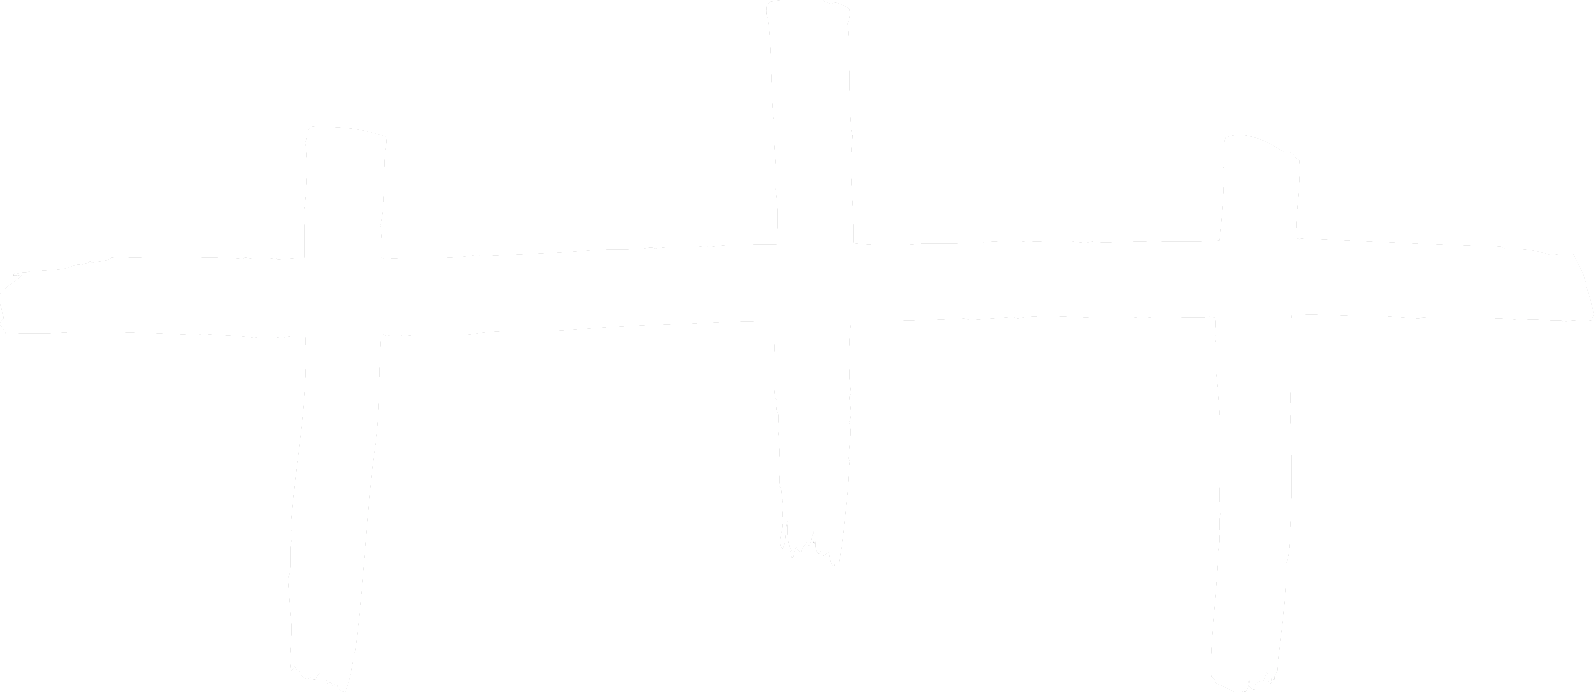 SWBC Image Only White.png